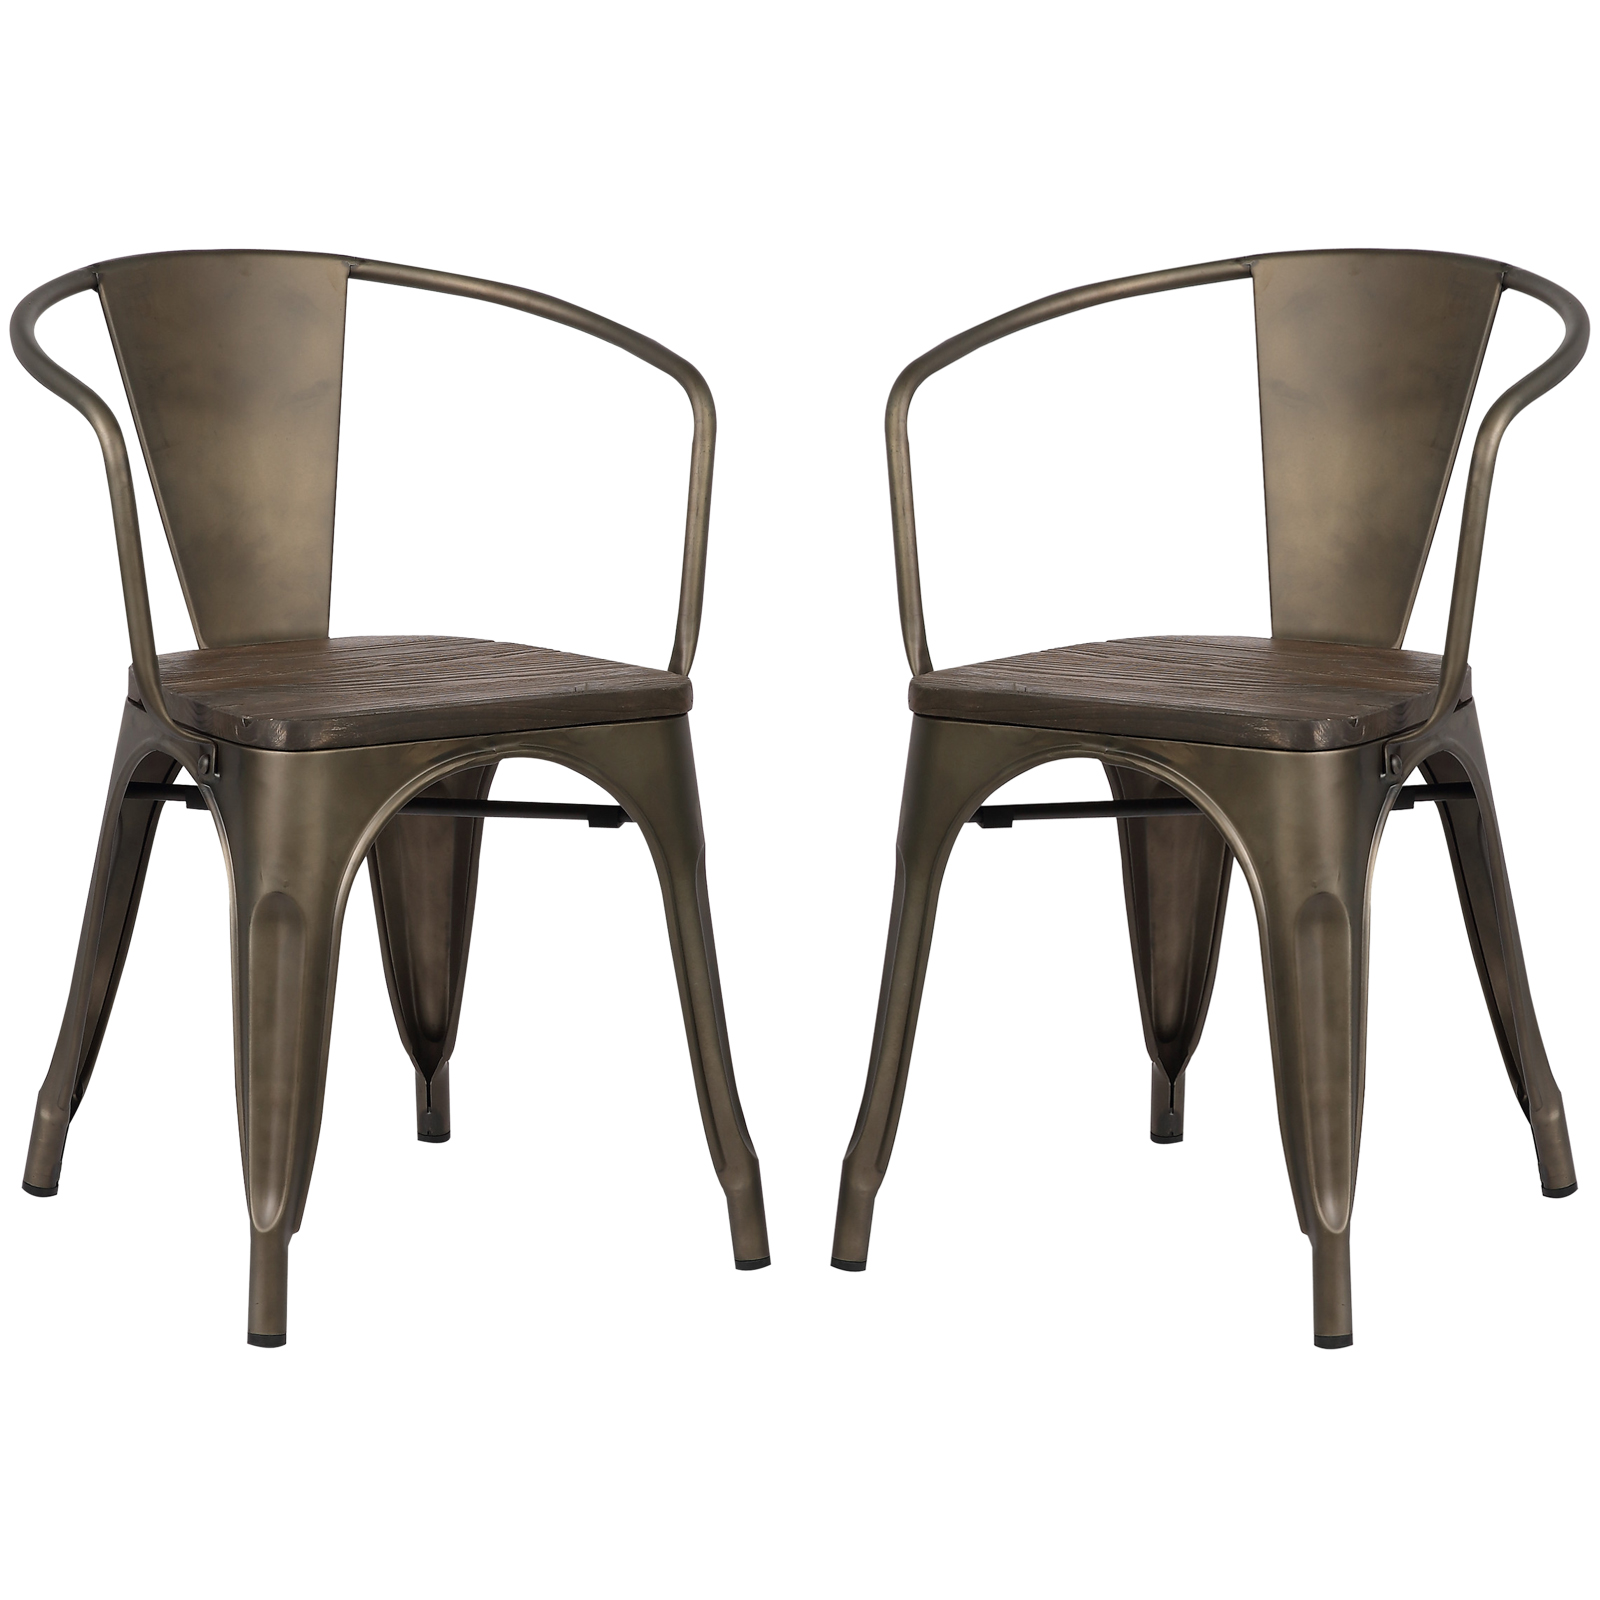 Poly and Bark Trattoria Arm Chair with Elm Wood Seat in Bronze (Set of 2)